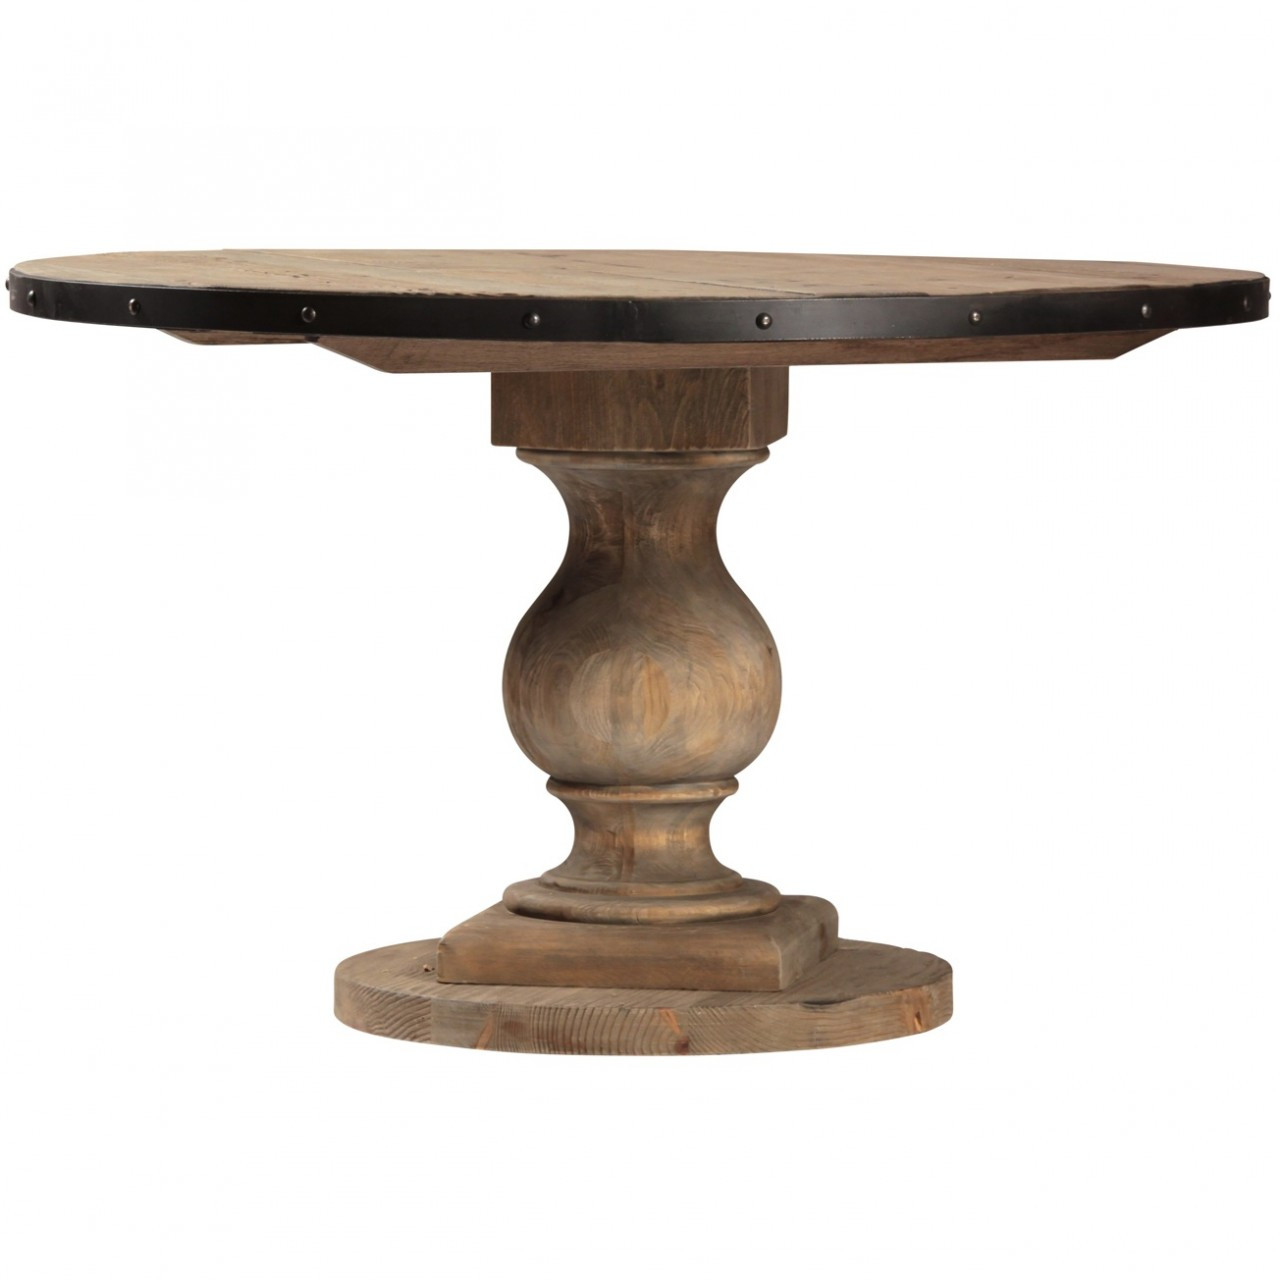 Farmhouse round pedestal dining room table 51 zin home for Pedestal table